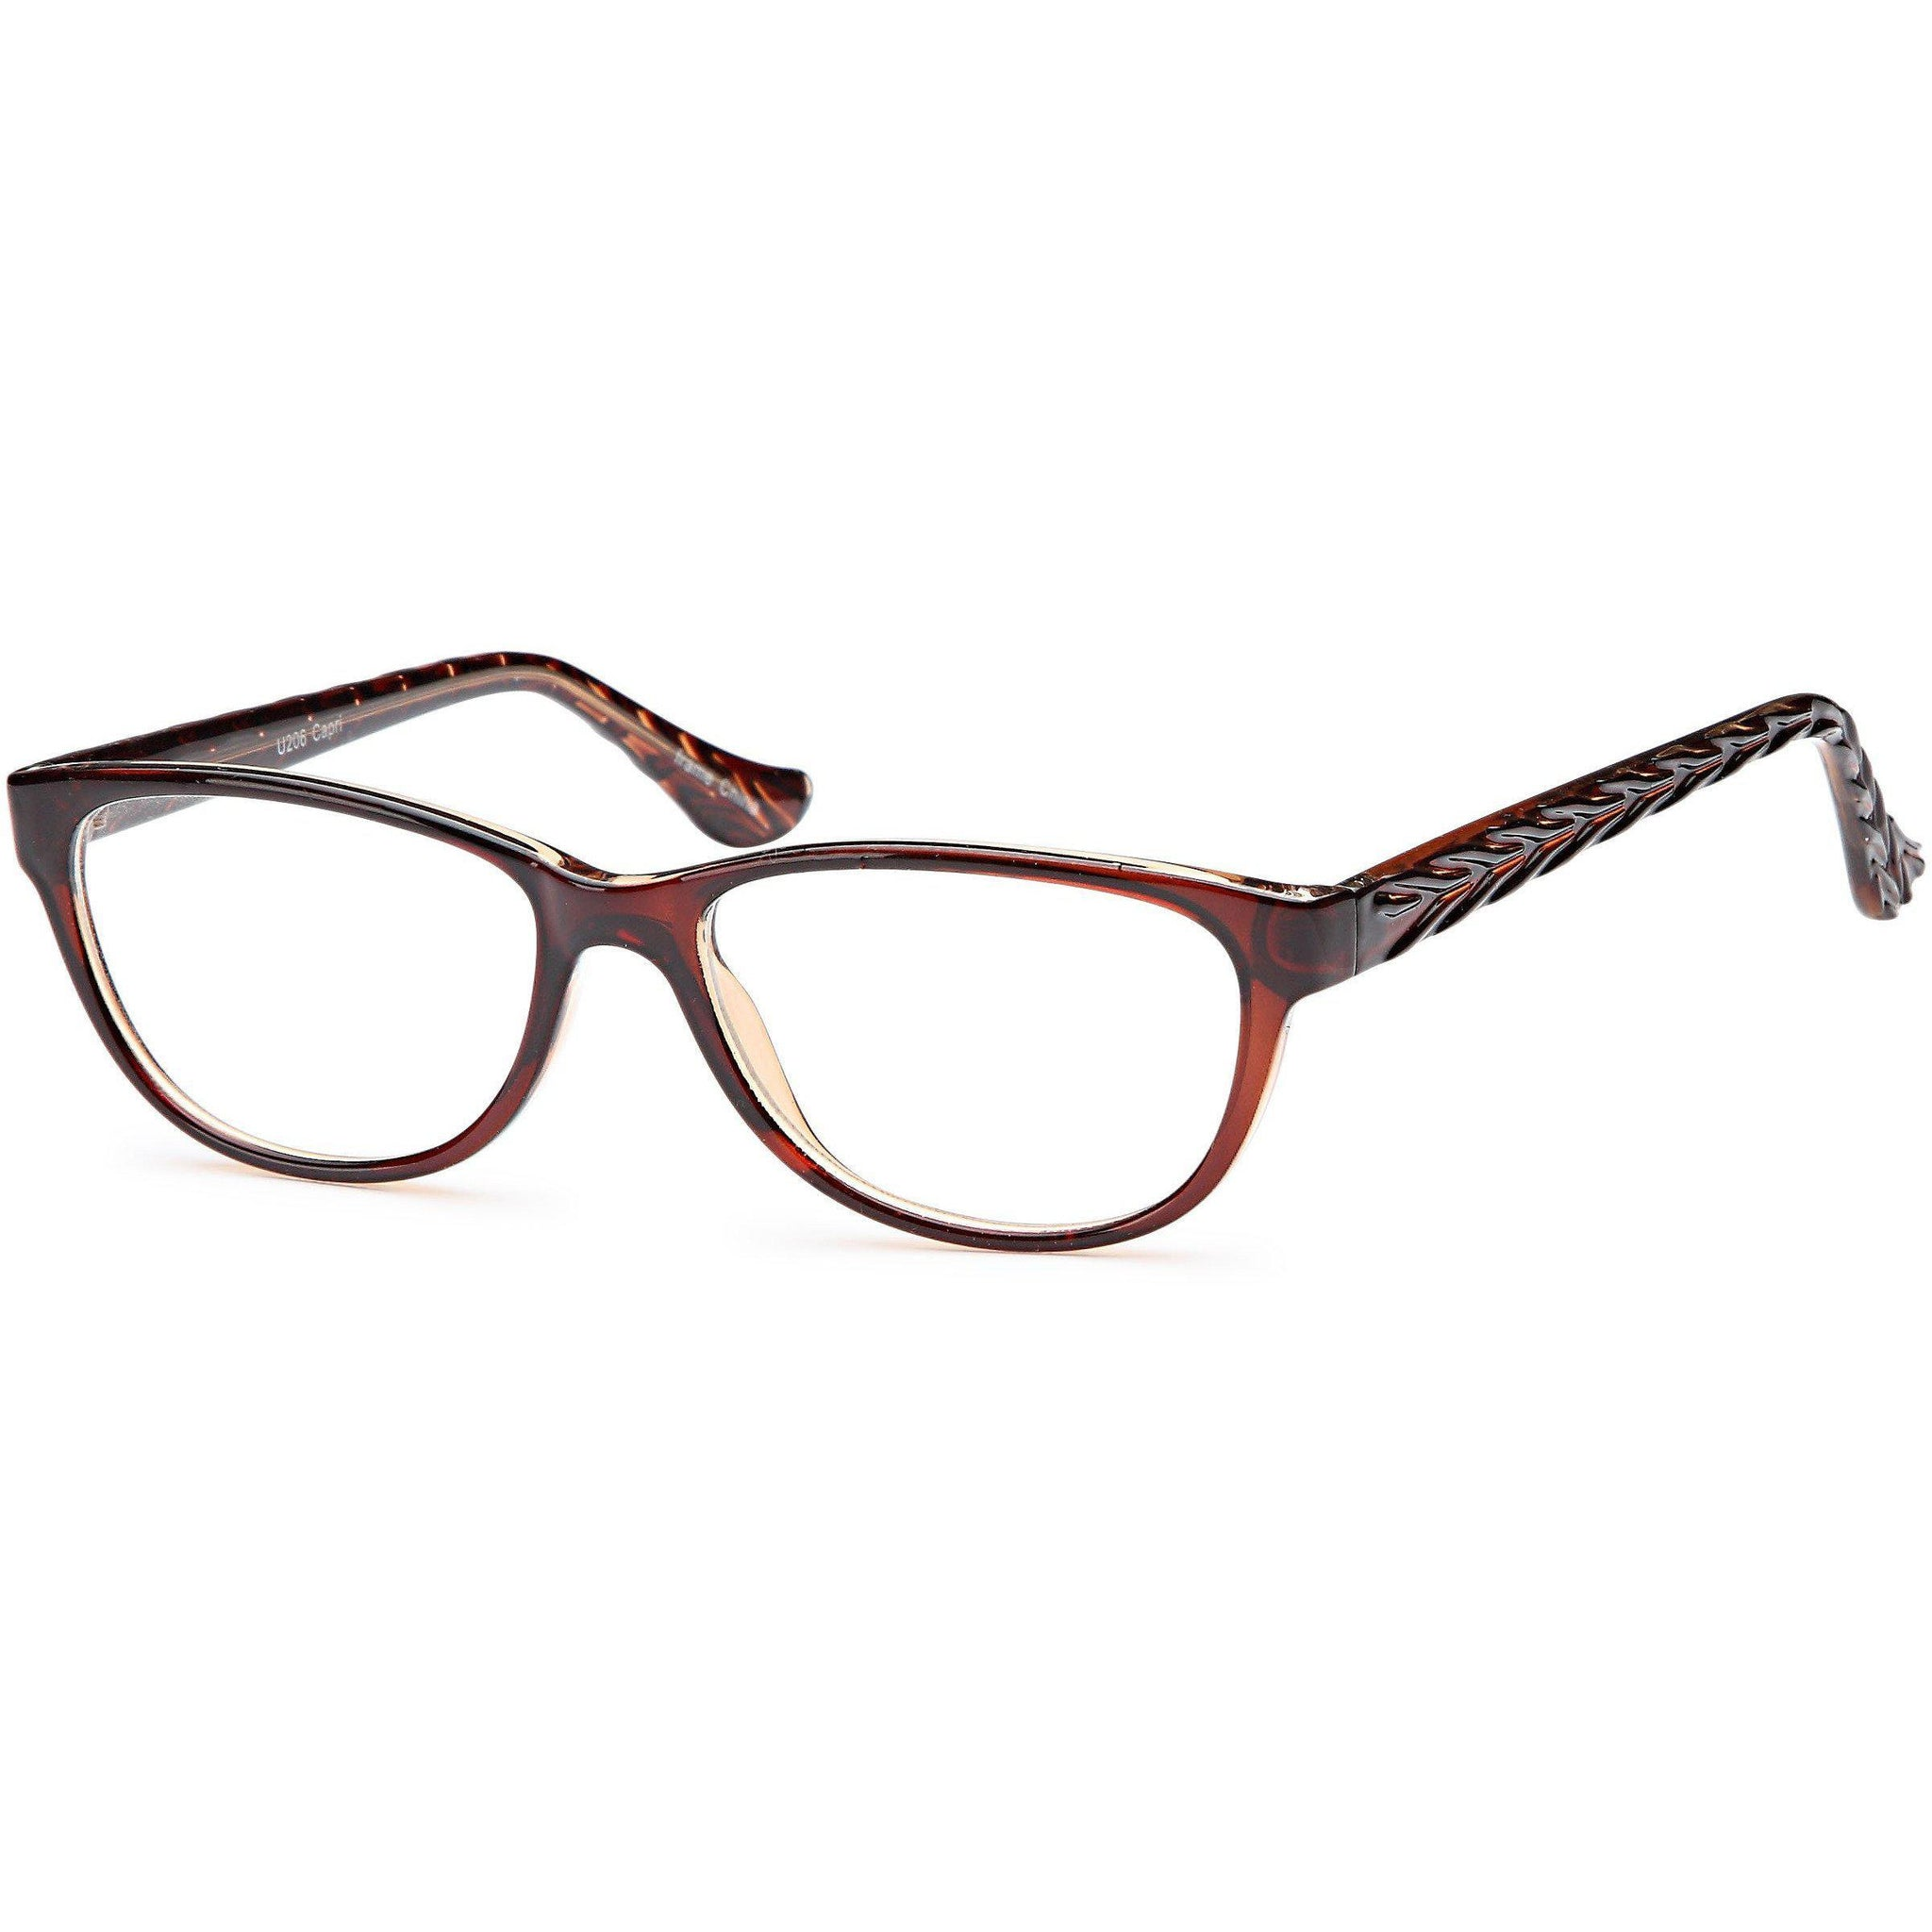 4U Prescription Glasses U 206 Optical Eyeglasses Frame - timetoshade